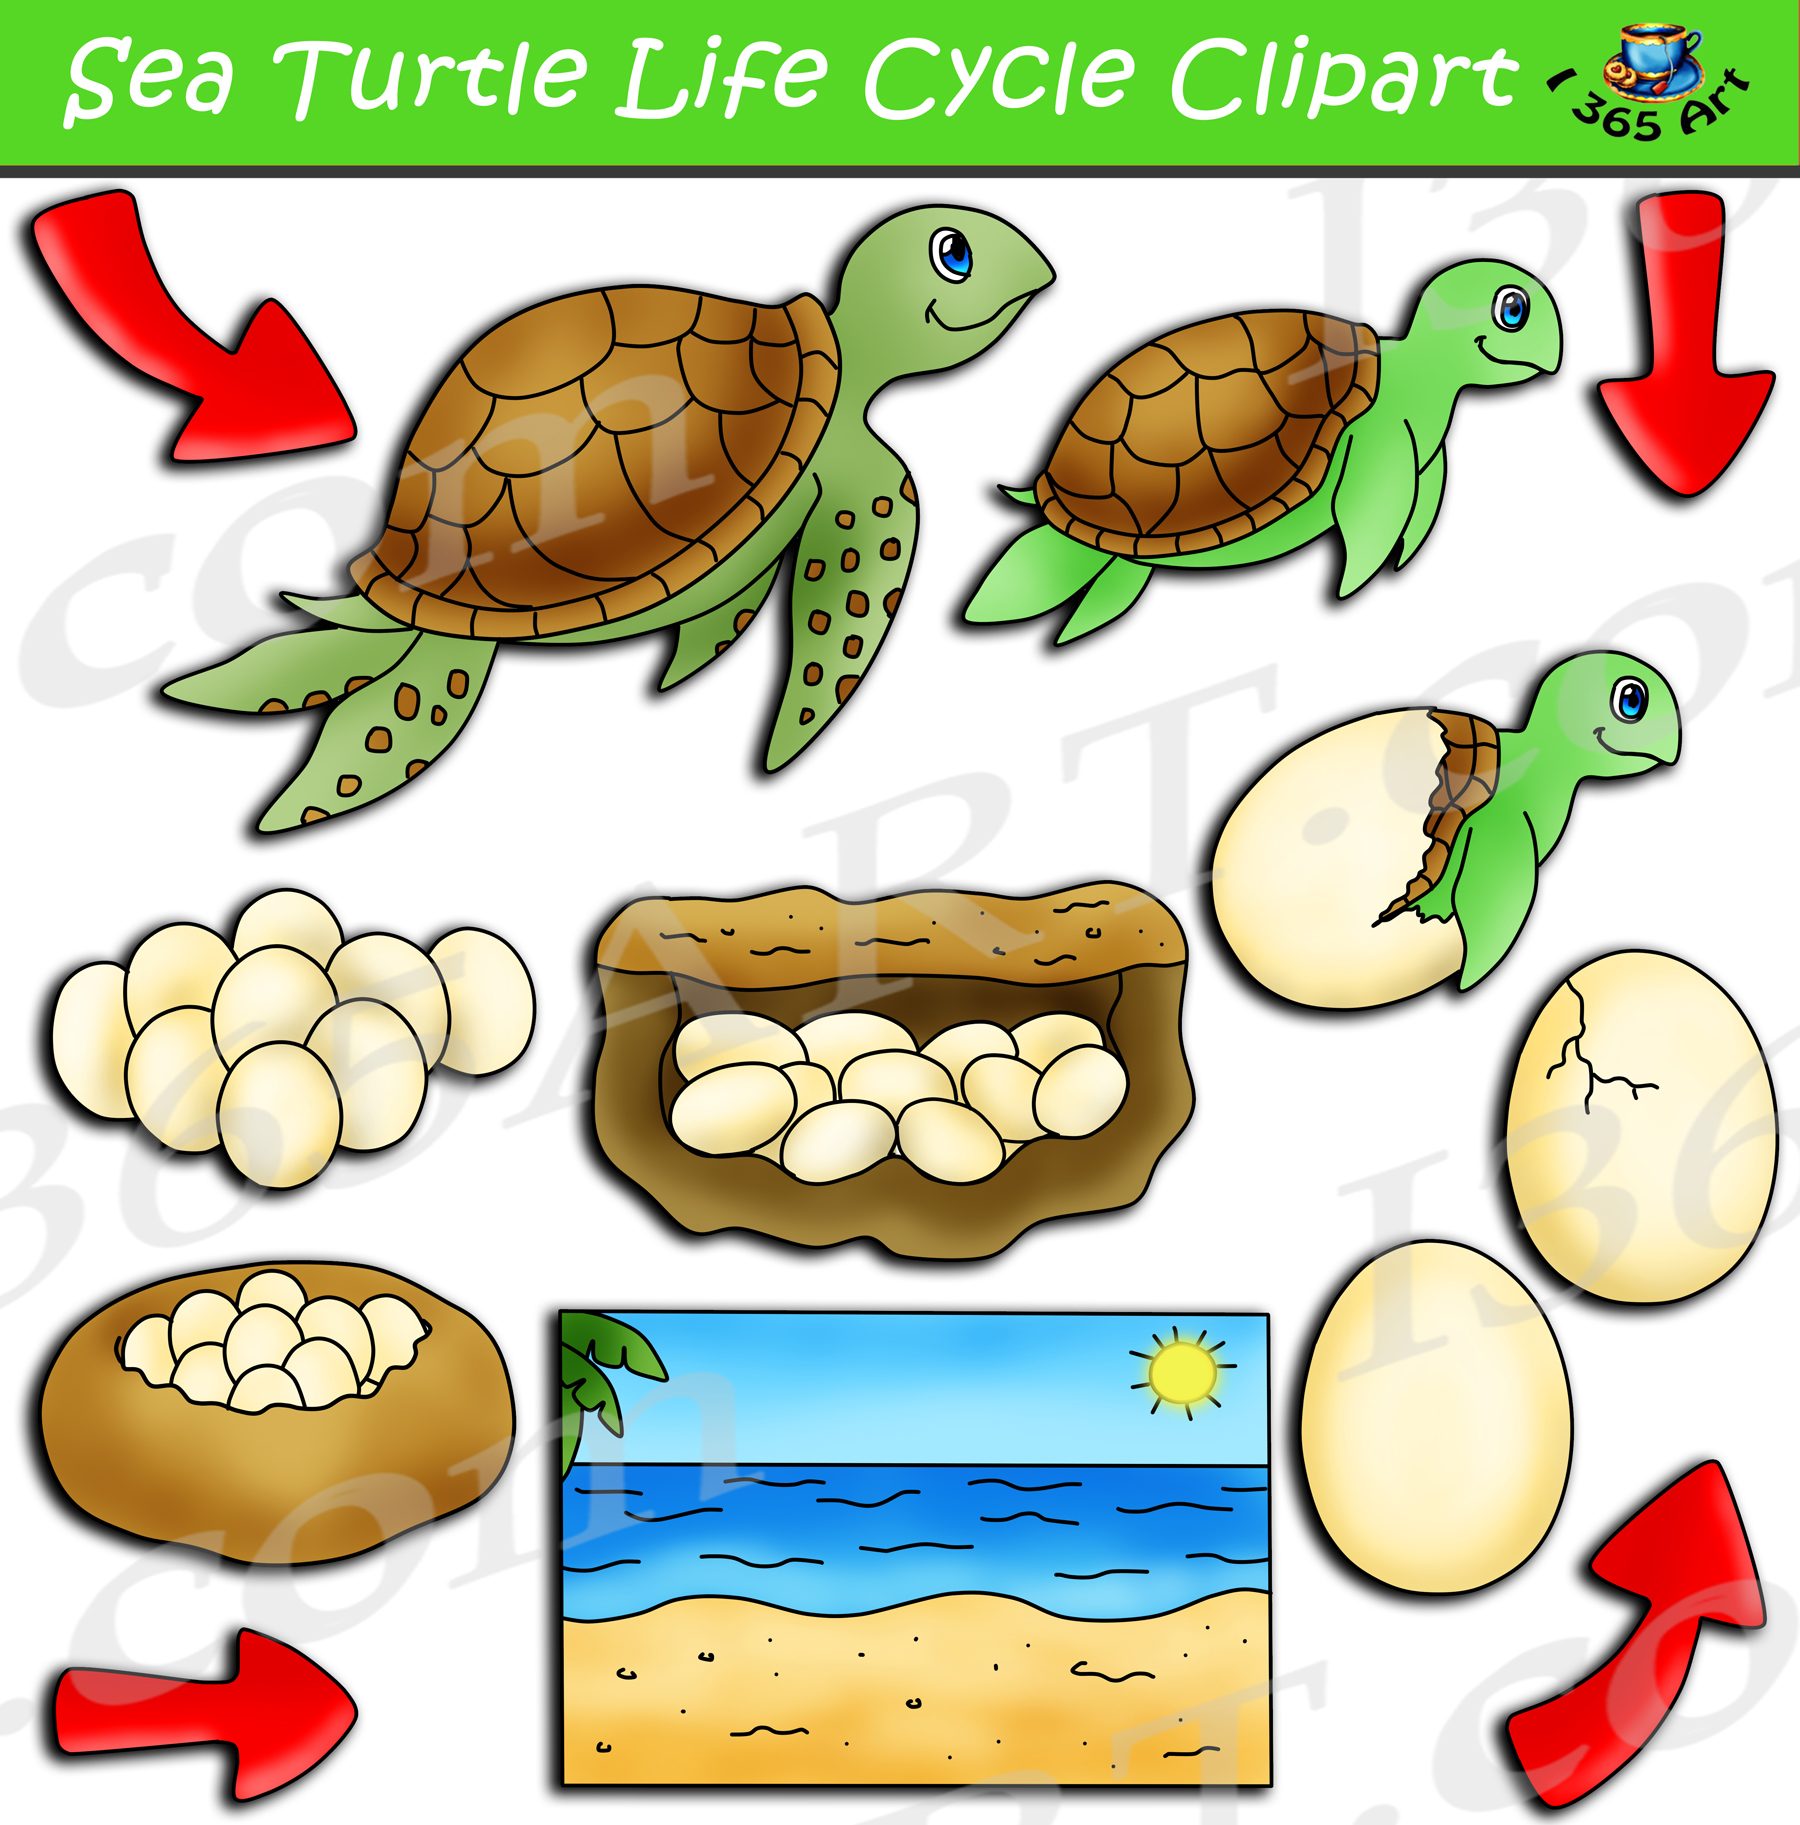 Sea Turtle Life Cycle Clipart Pack